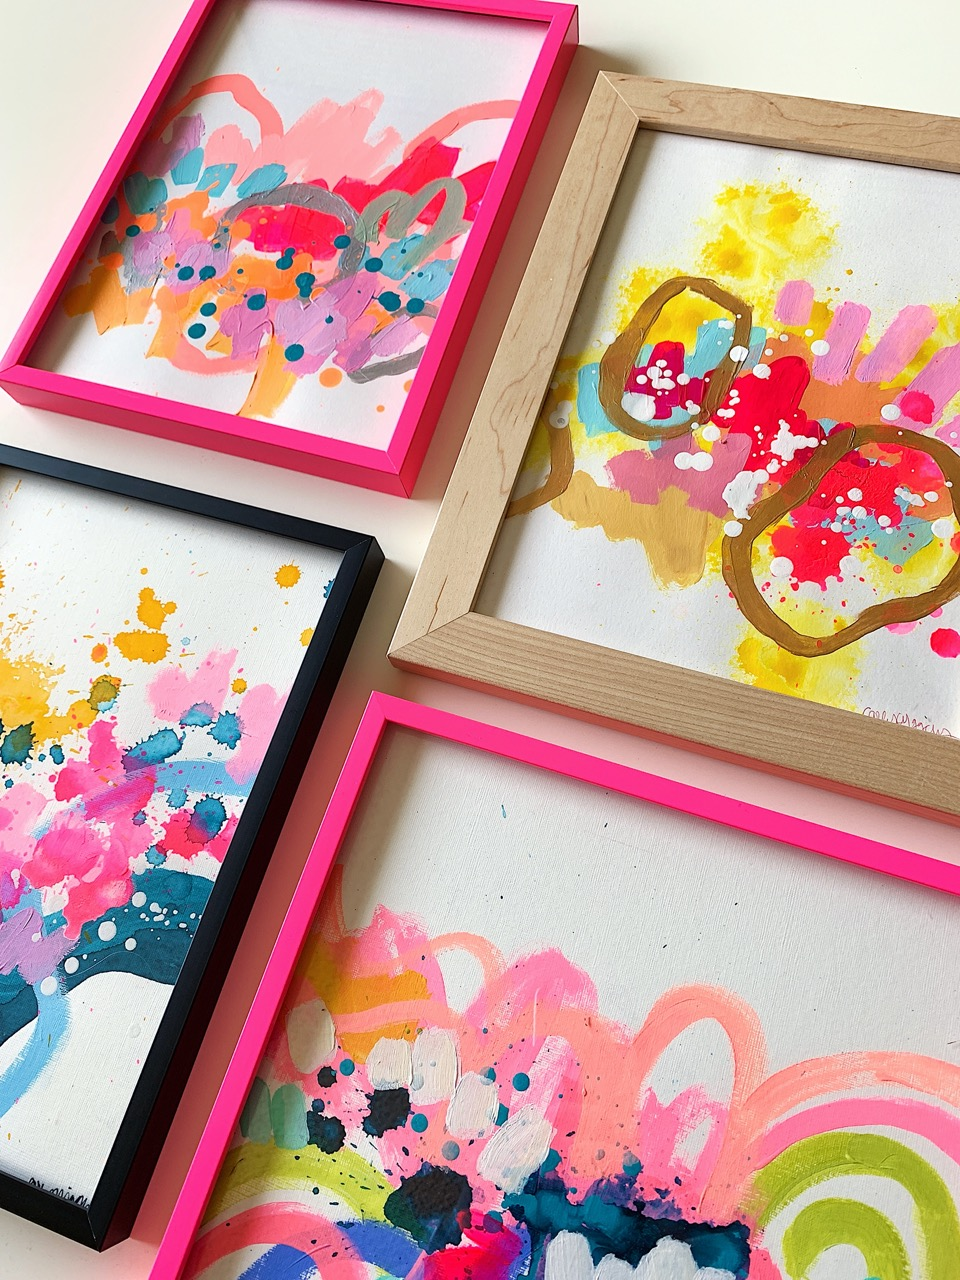 small frames with creative artwork